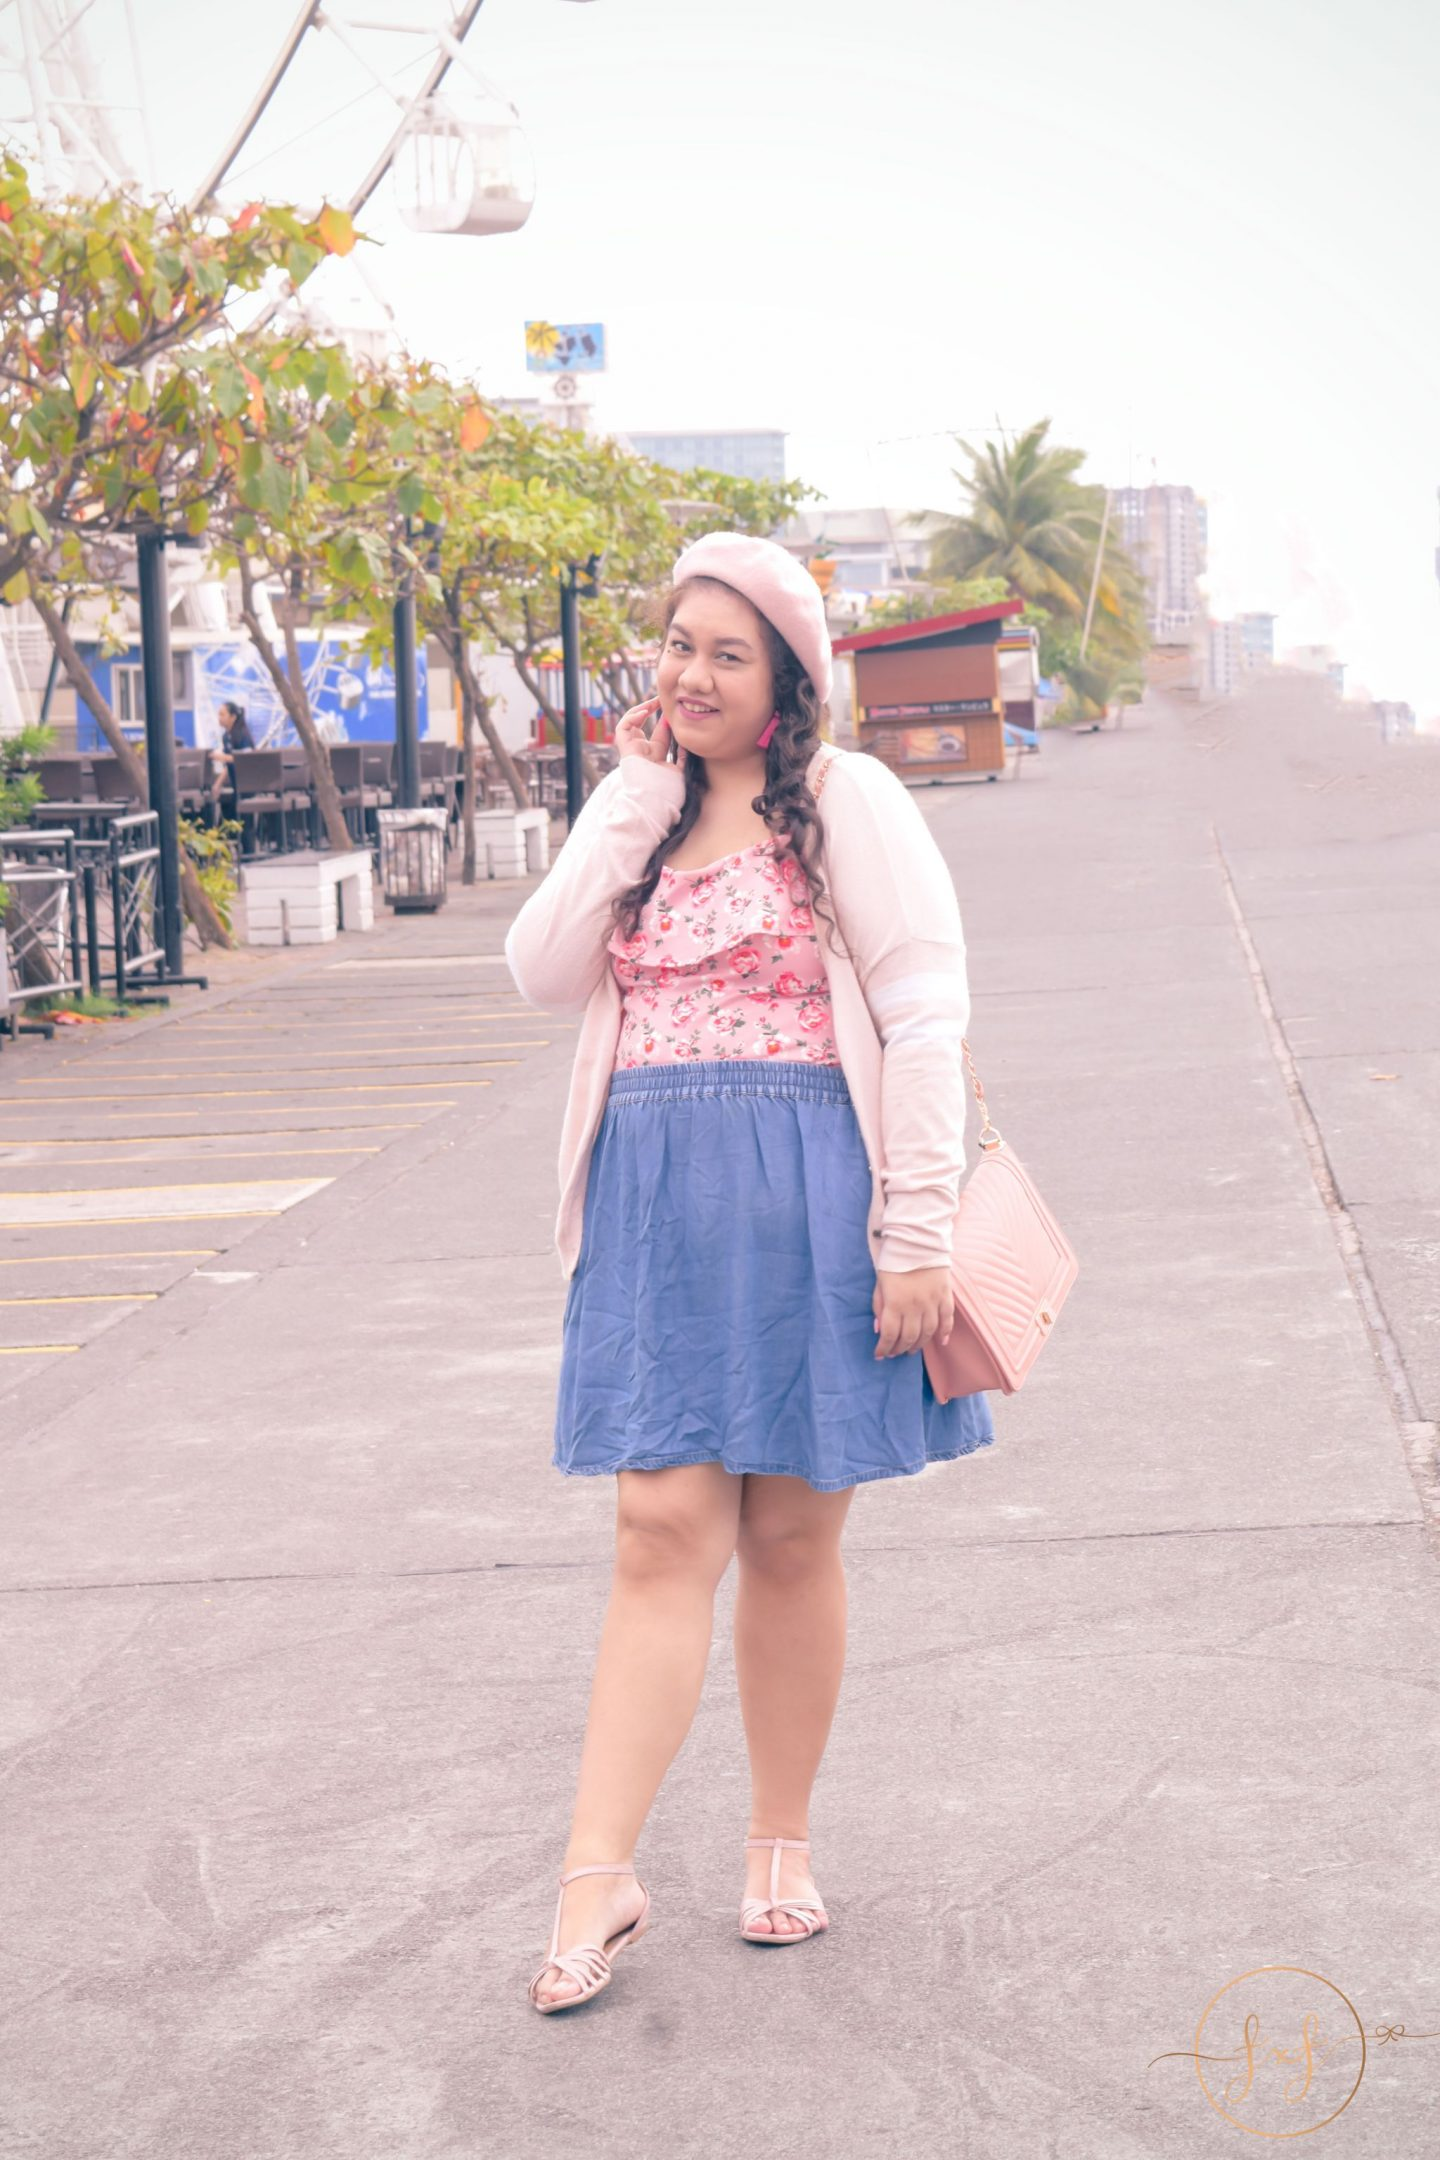 Styling a Curvy Outfit From Spring to Summer